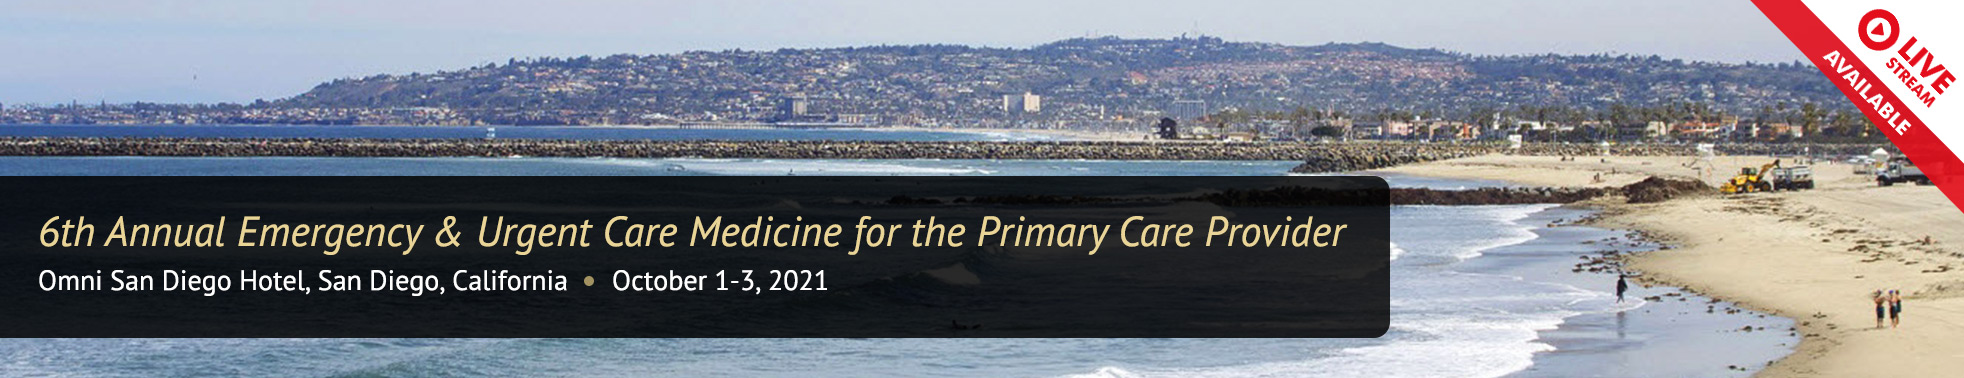 San Diego 6th Annual Emergency & Urgent Care Fall 2021 Conference